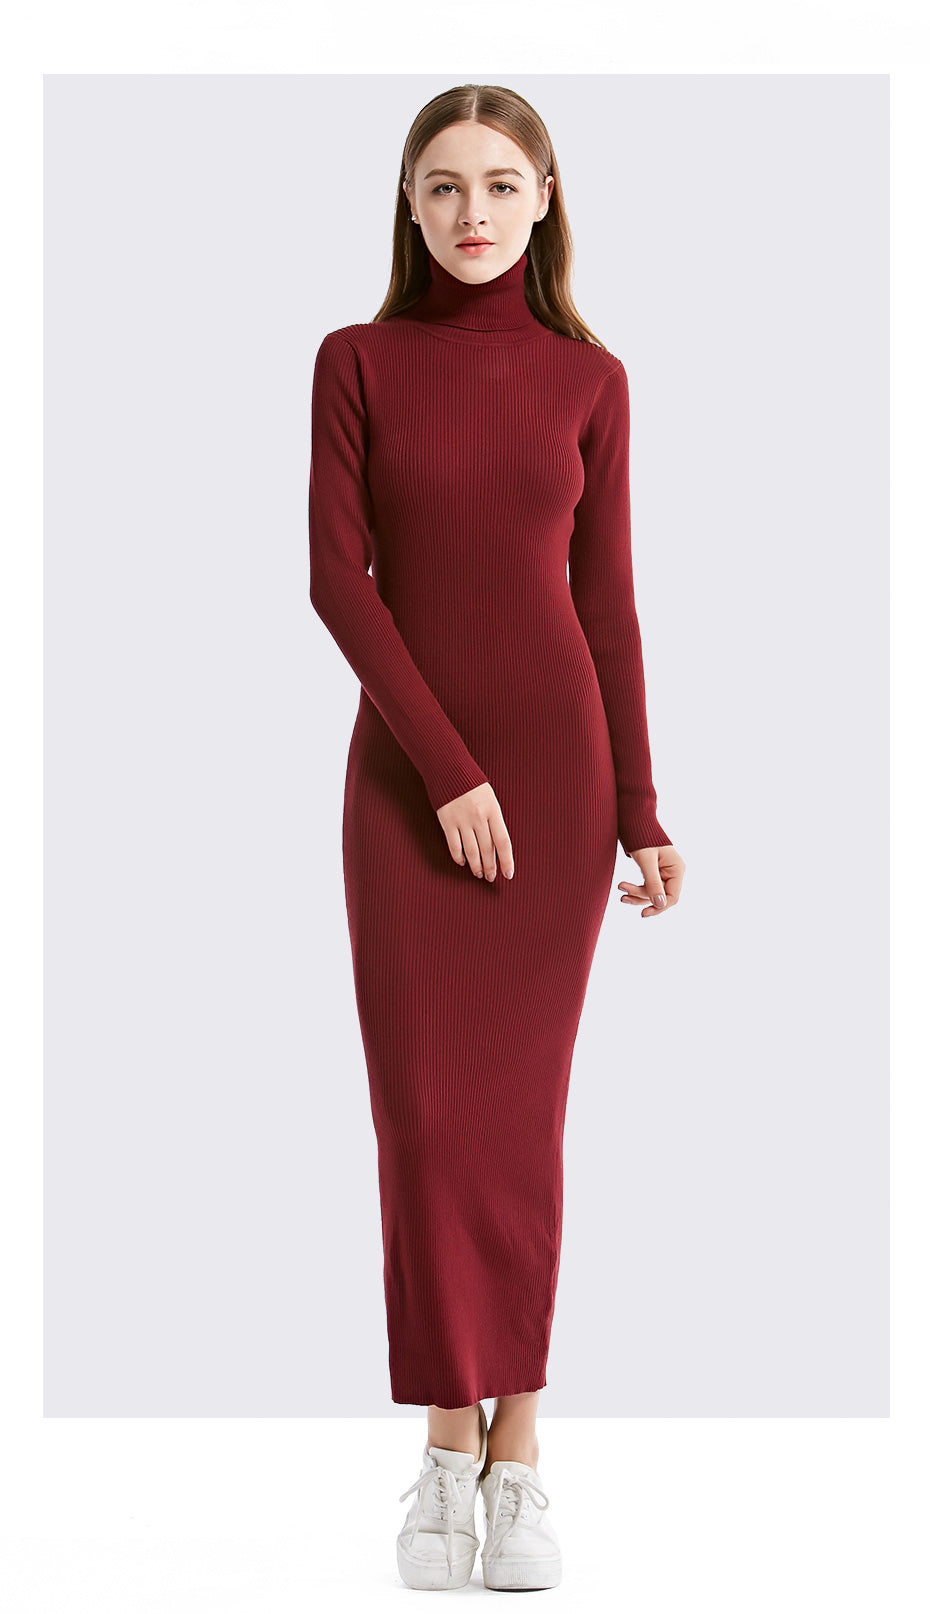 Women Turtleneck Knitted Pullover Long Sweater Dress